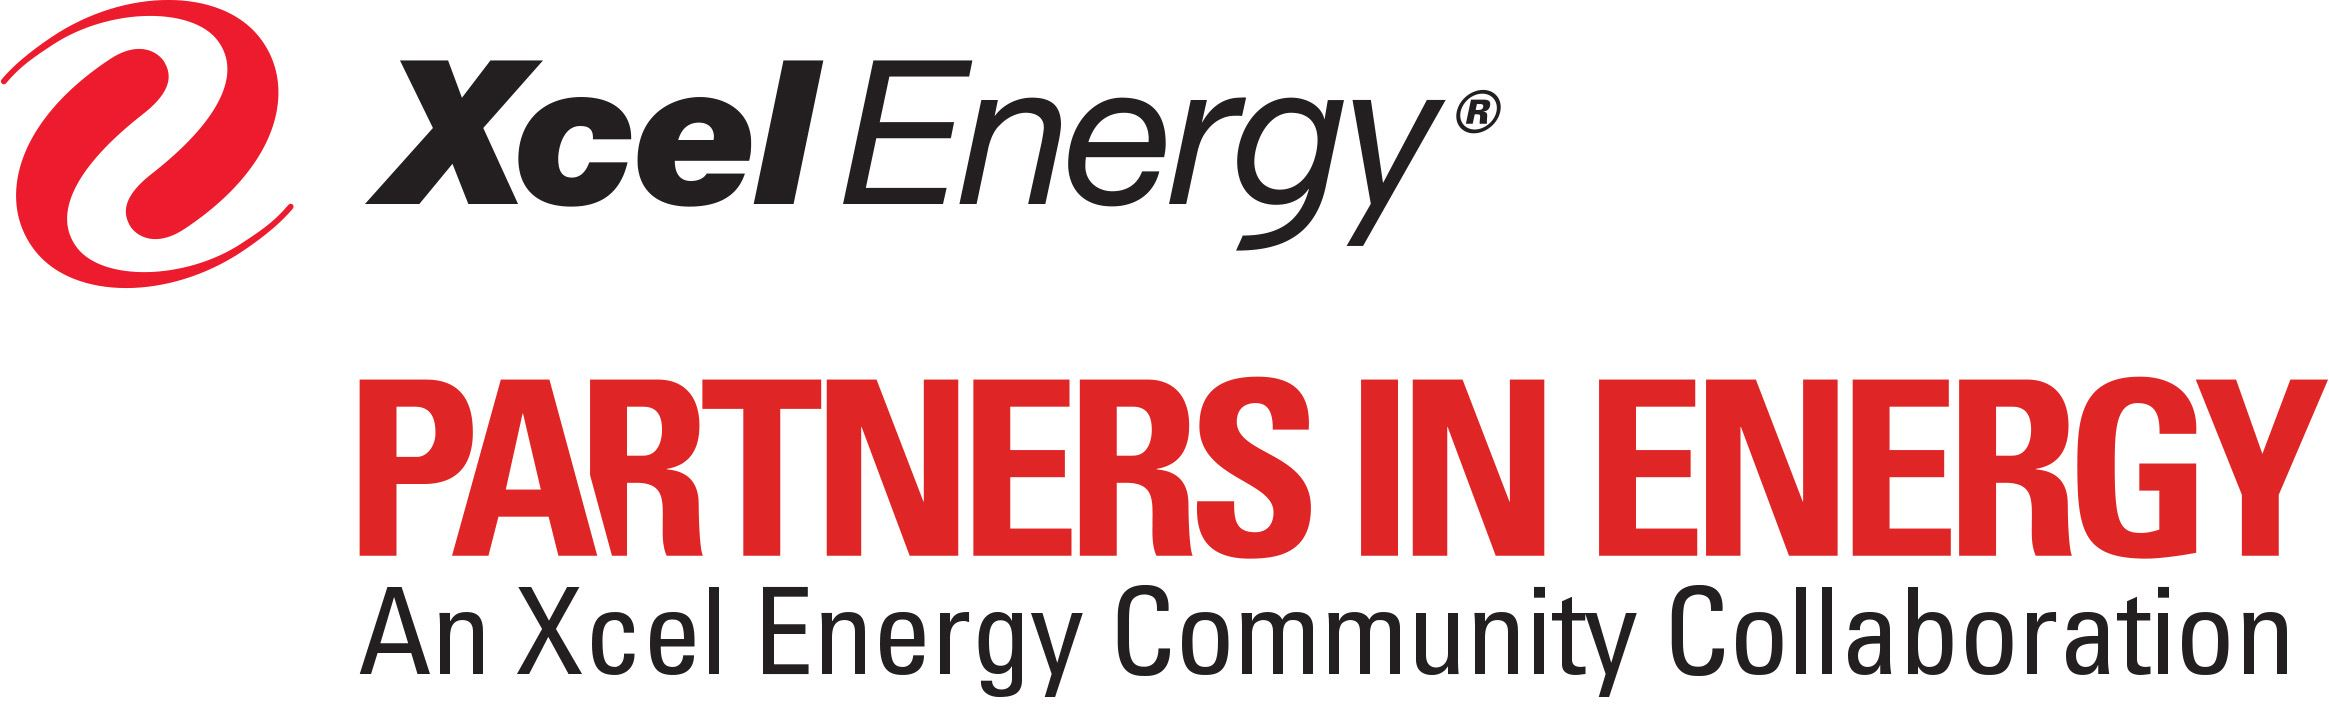 Xcel Energy. Partners in Energy. An Xcel Energy Community Collaboration.